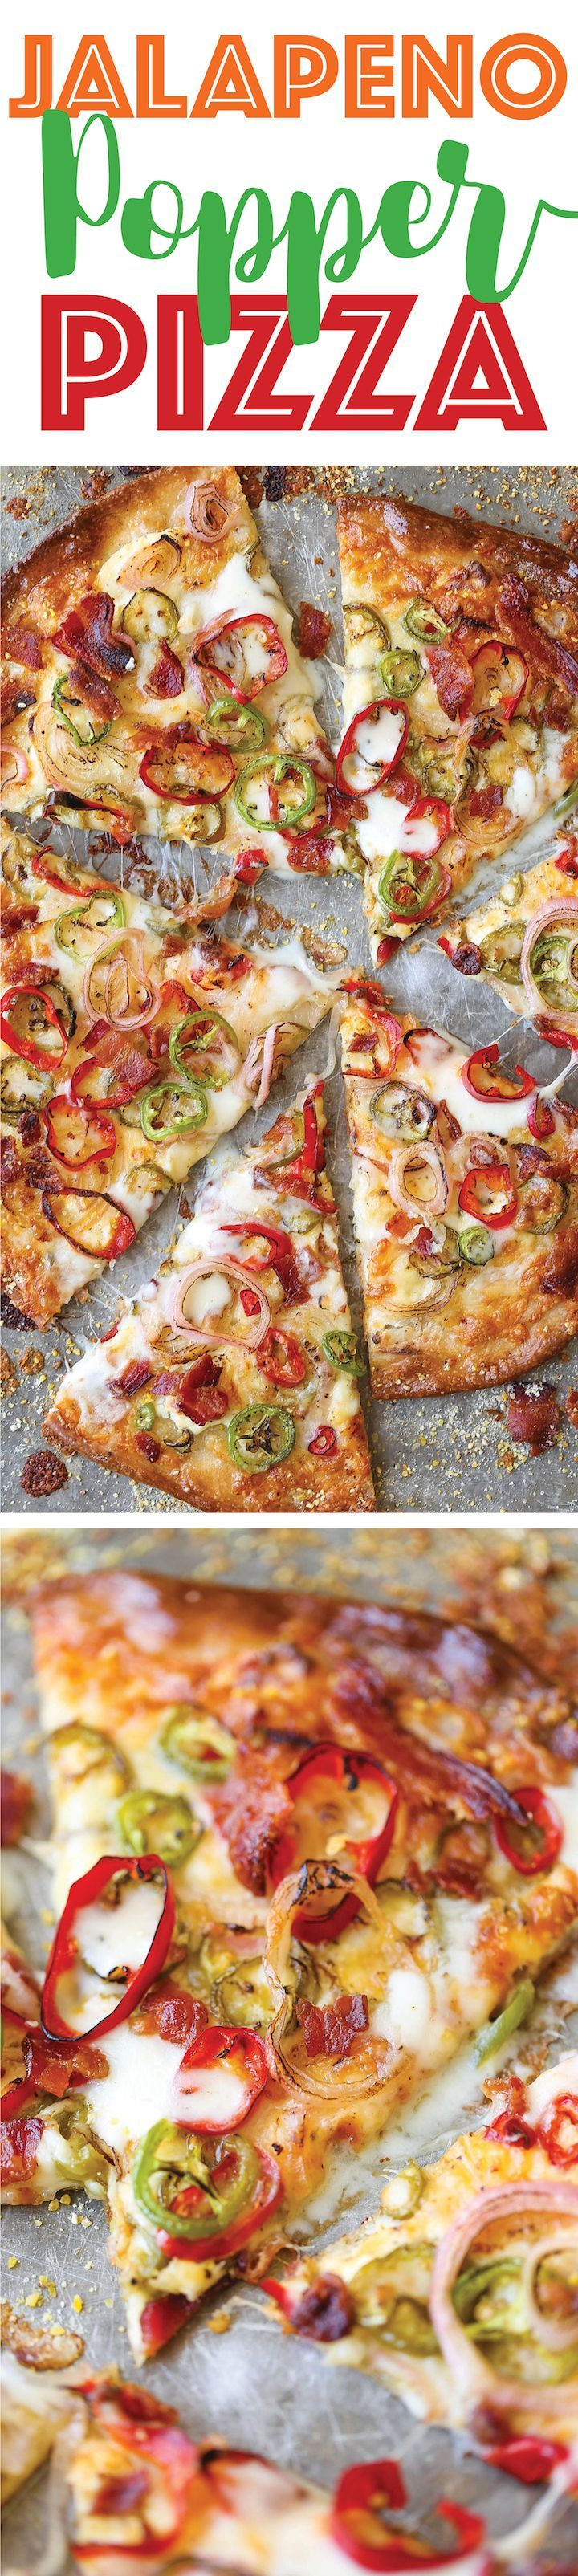 Jalapeño Popper Pizza - All the flavors of a cheesy jalapeño popper is so much better in pizza form, with added bacon of course!